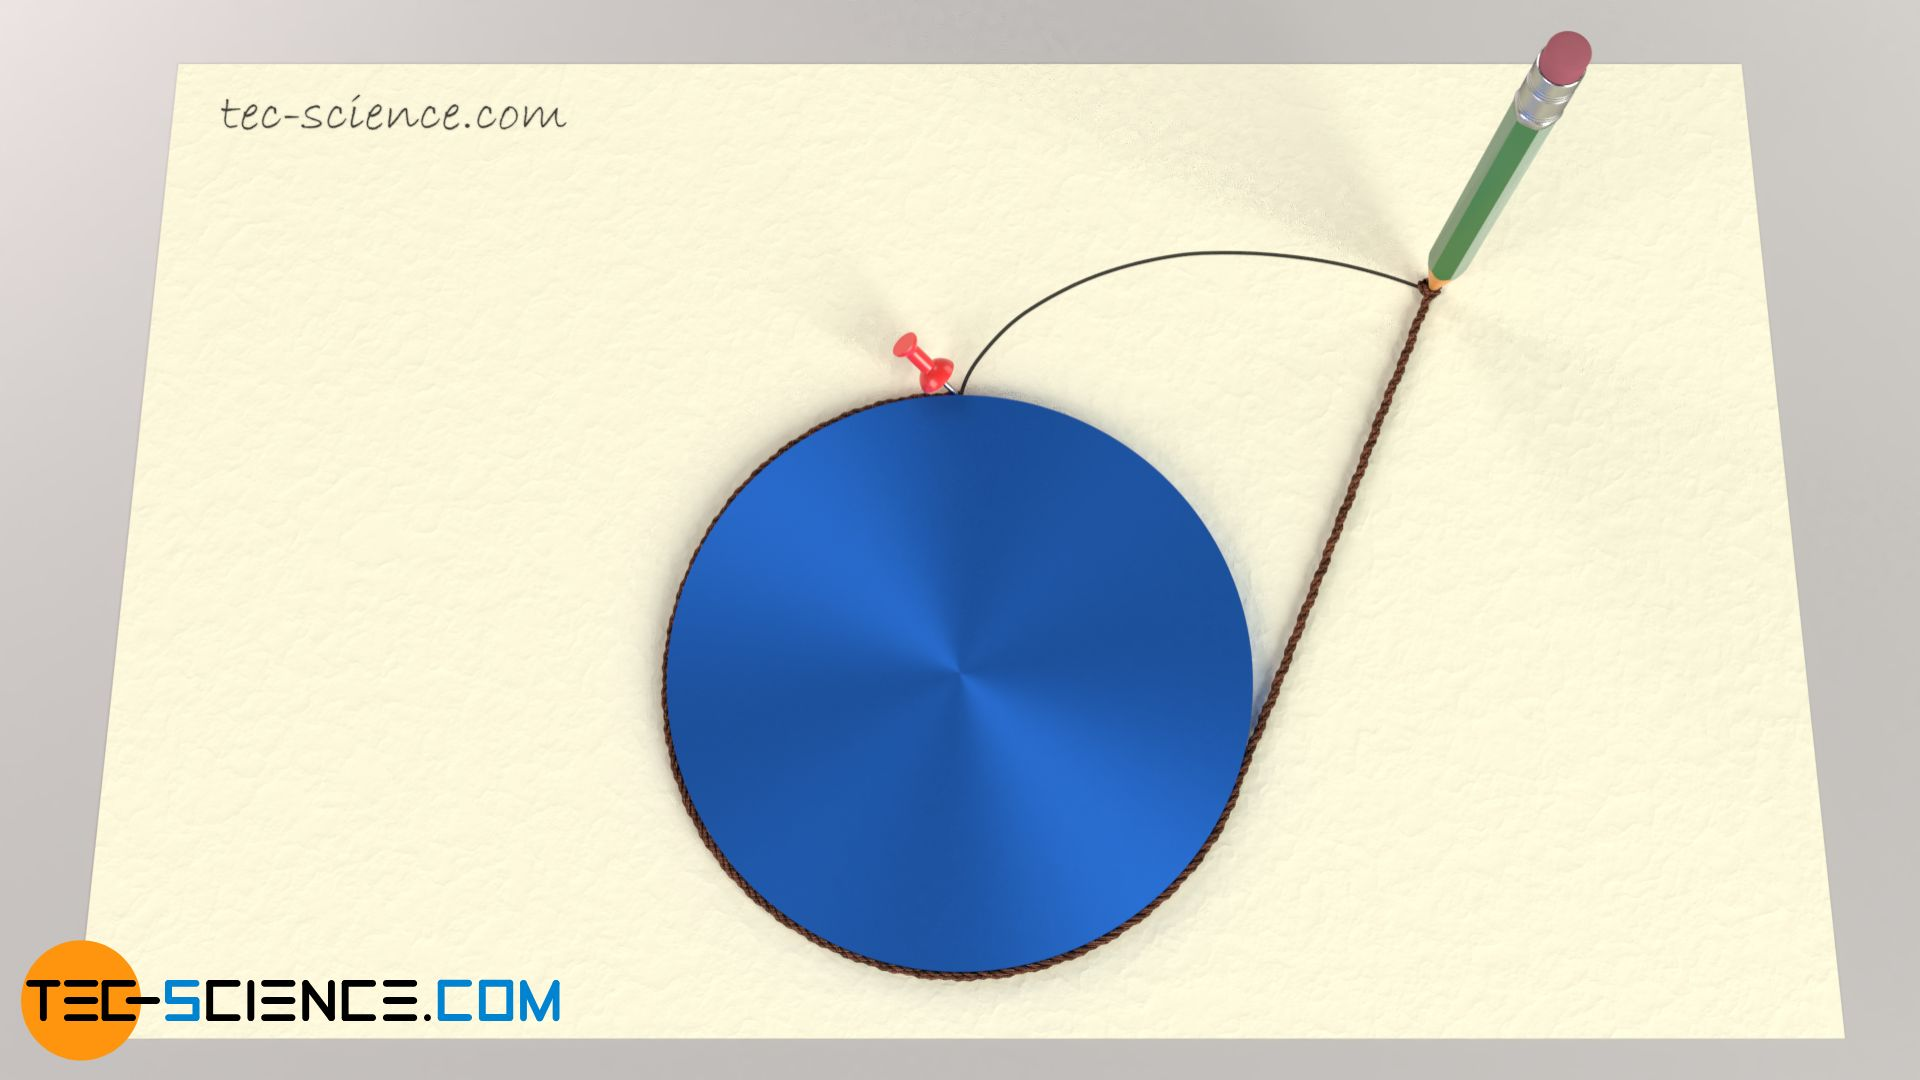 Constructing an involute by unwinding a string on a circle